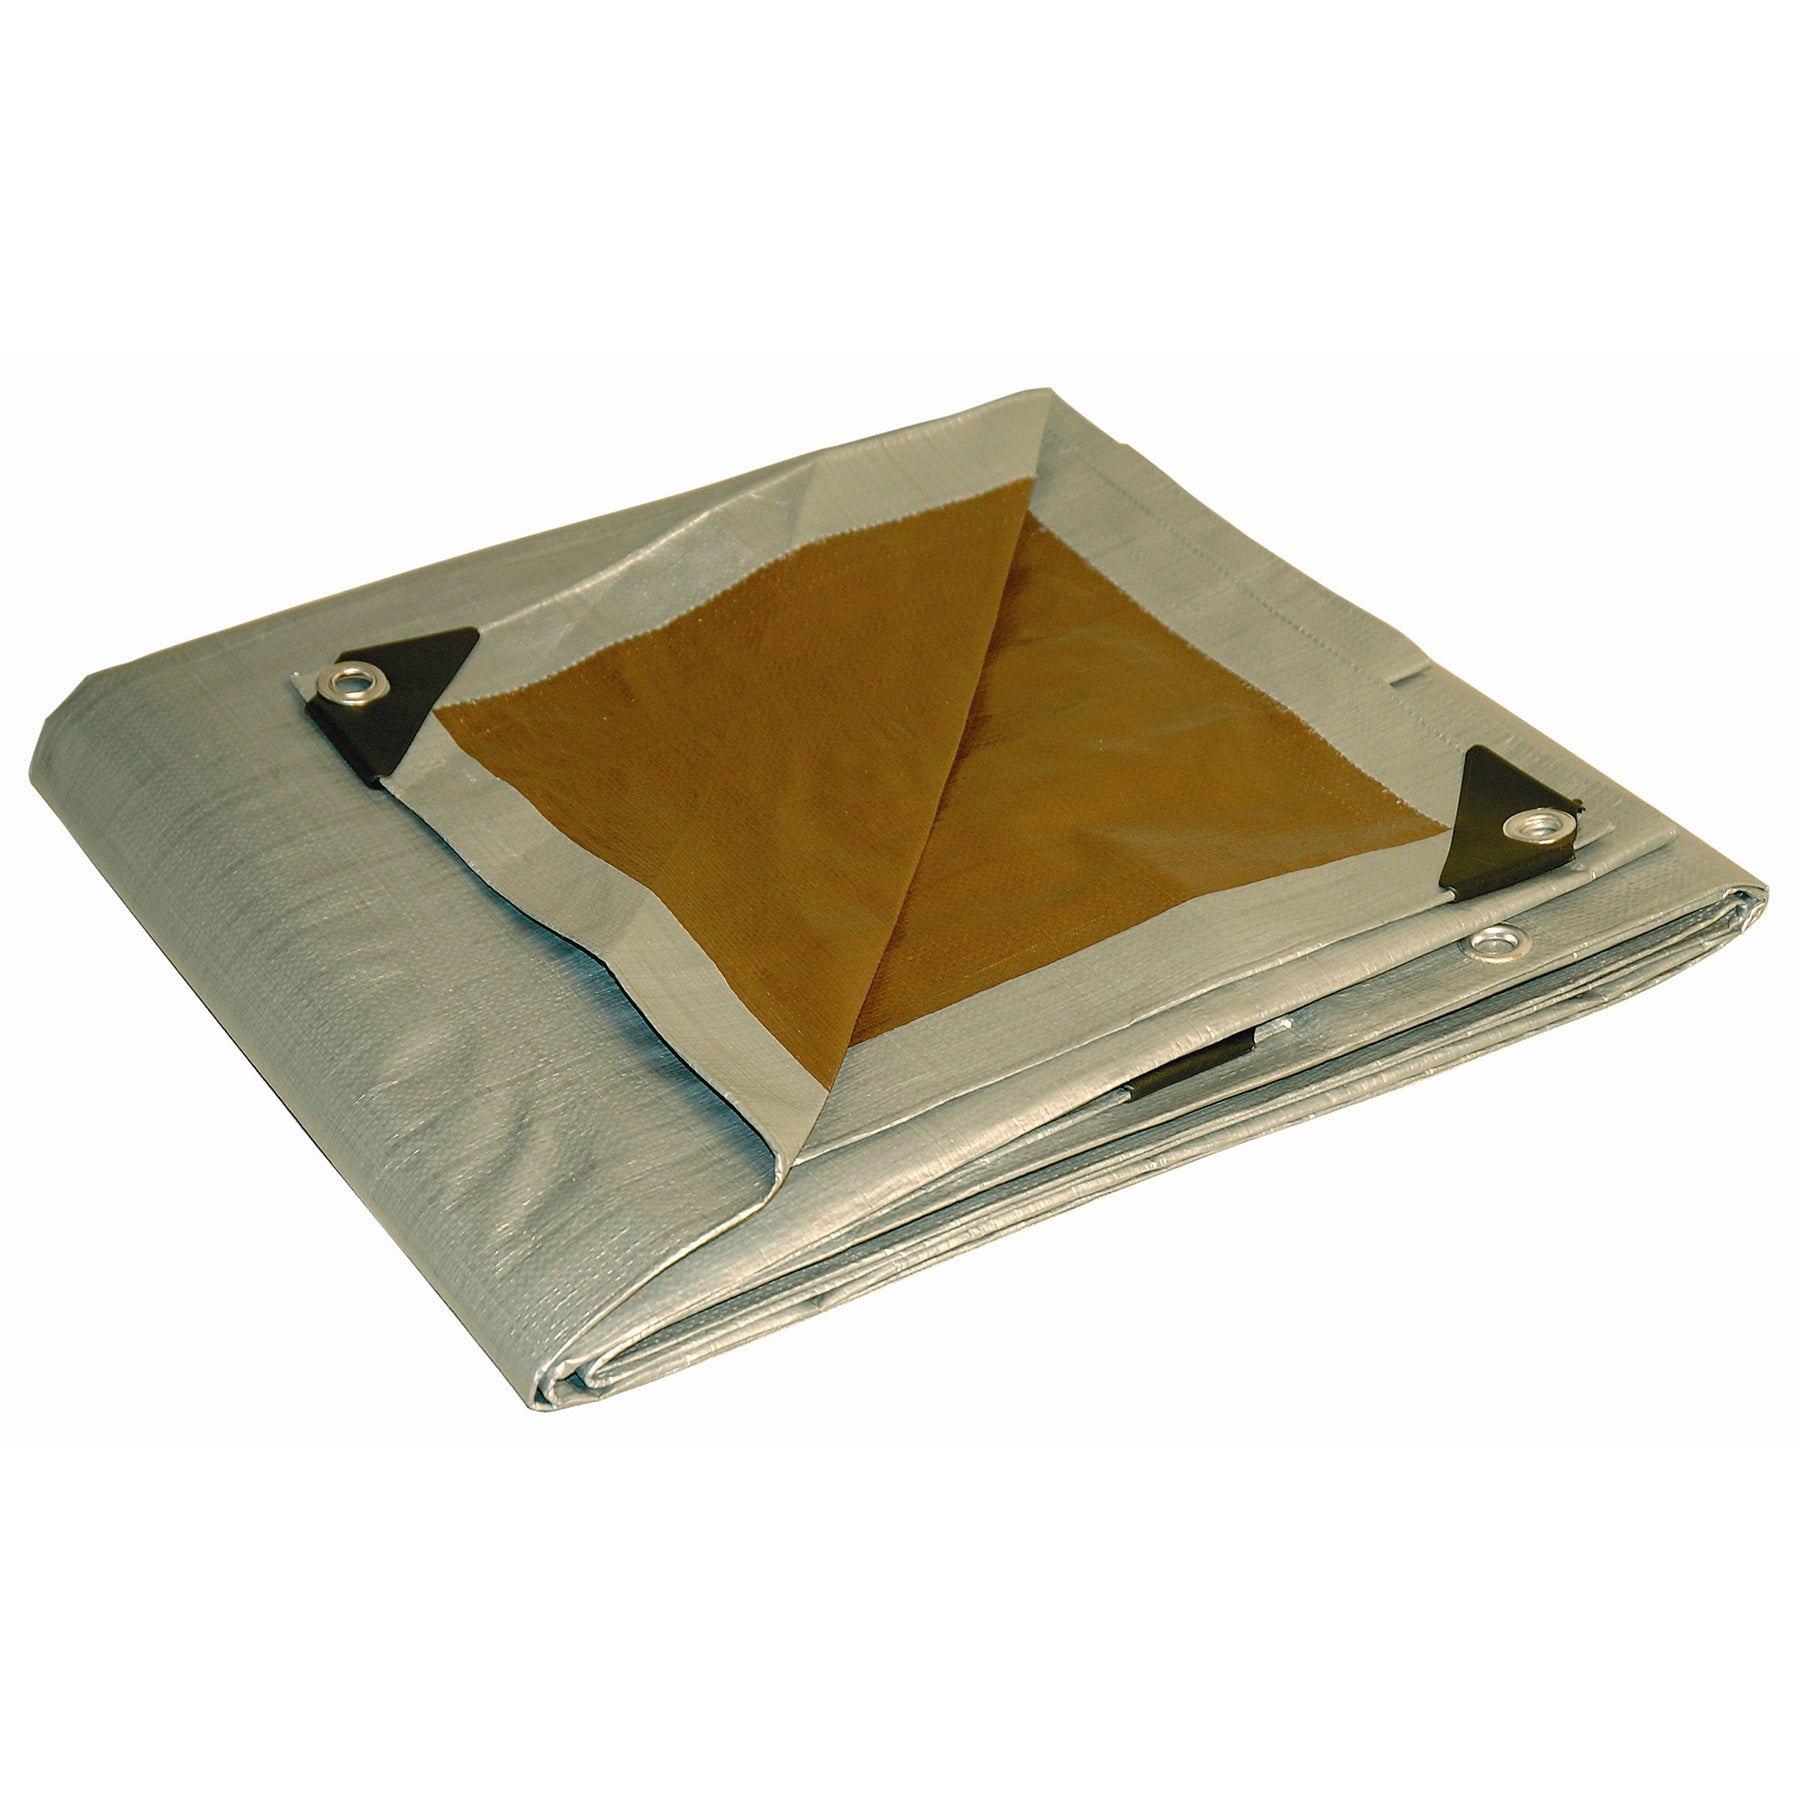 Foremost Dry Top Tarp Silver Brown 21216 12' X 16' Reversible Heavy-Duty UV  Treated